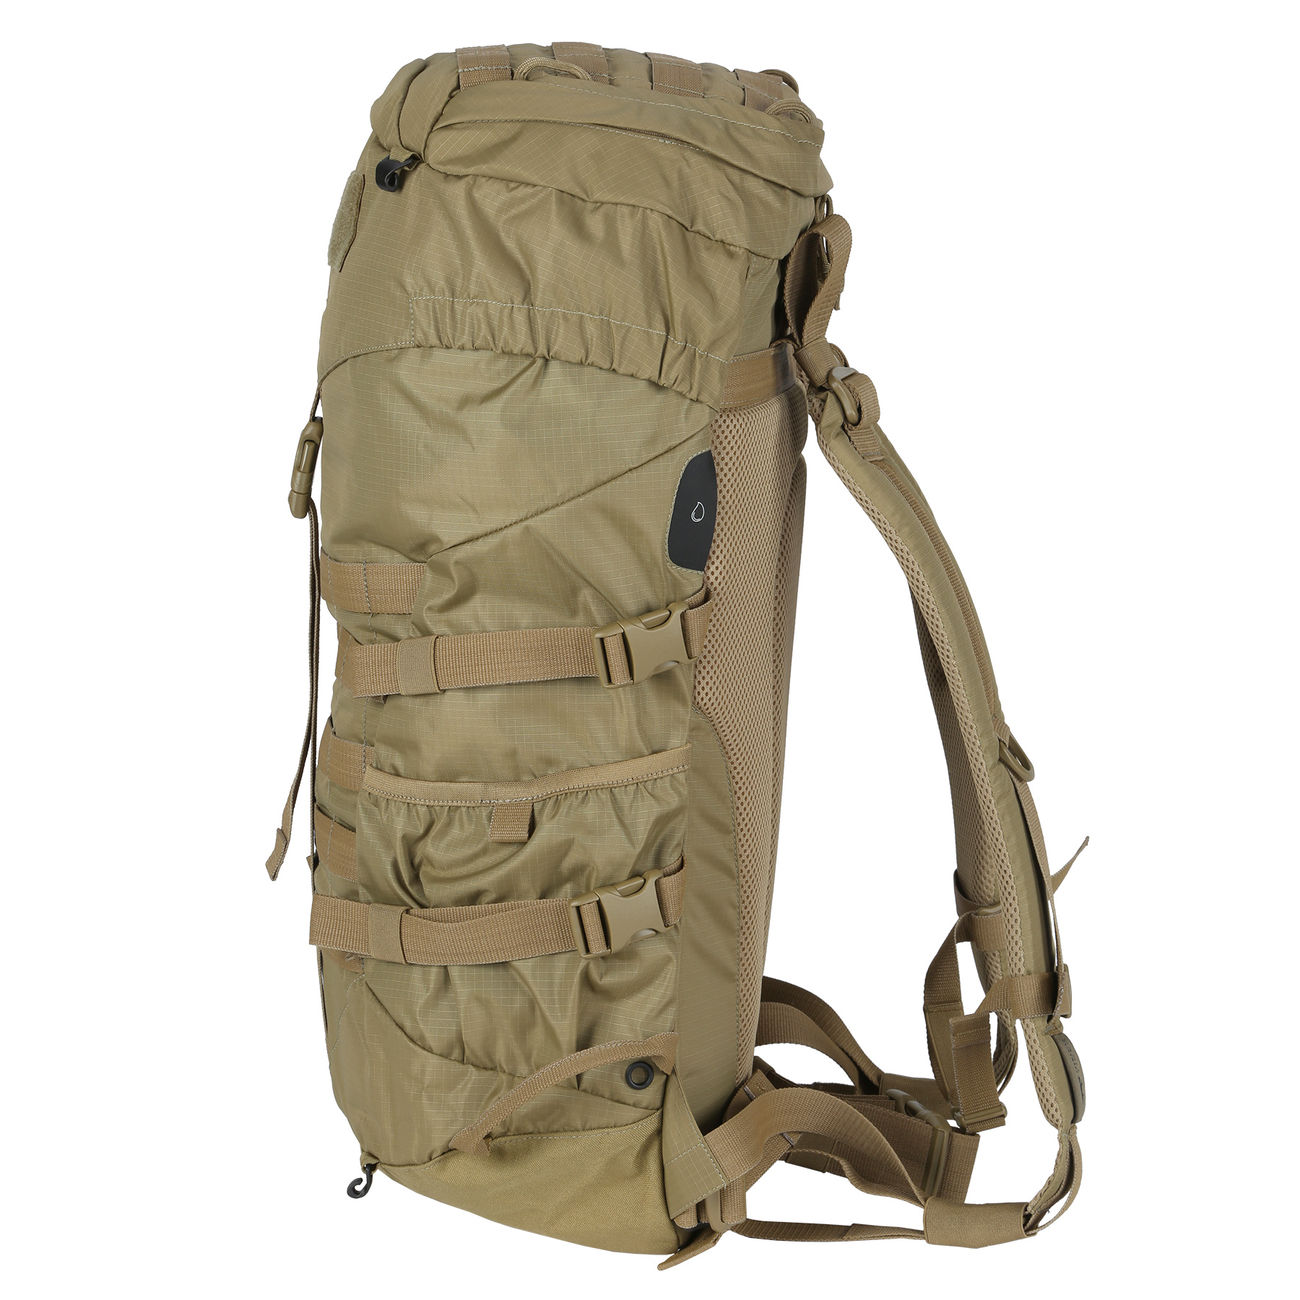 TT Rucksack Trooper Light Pack 35 khaki 1